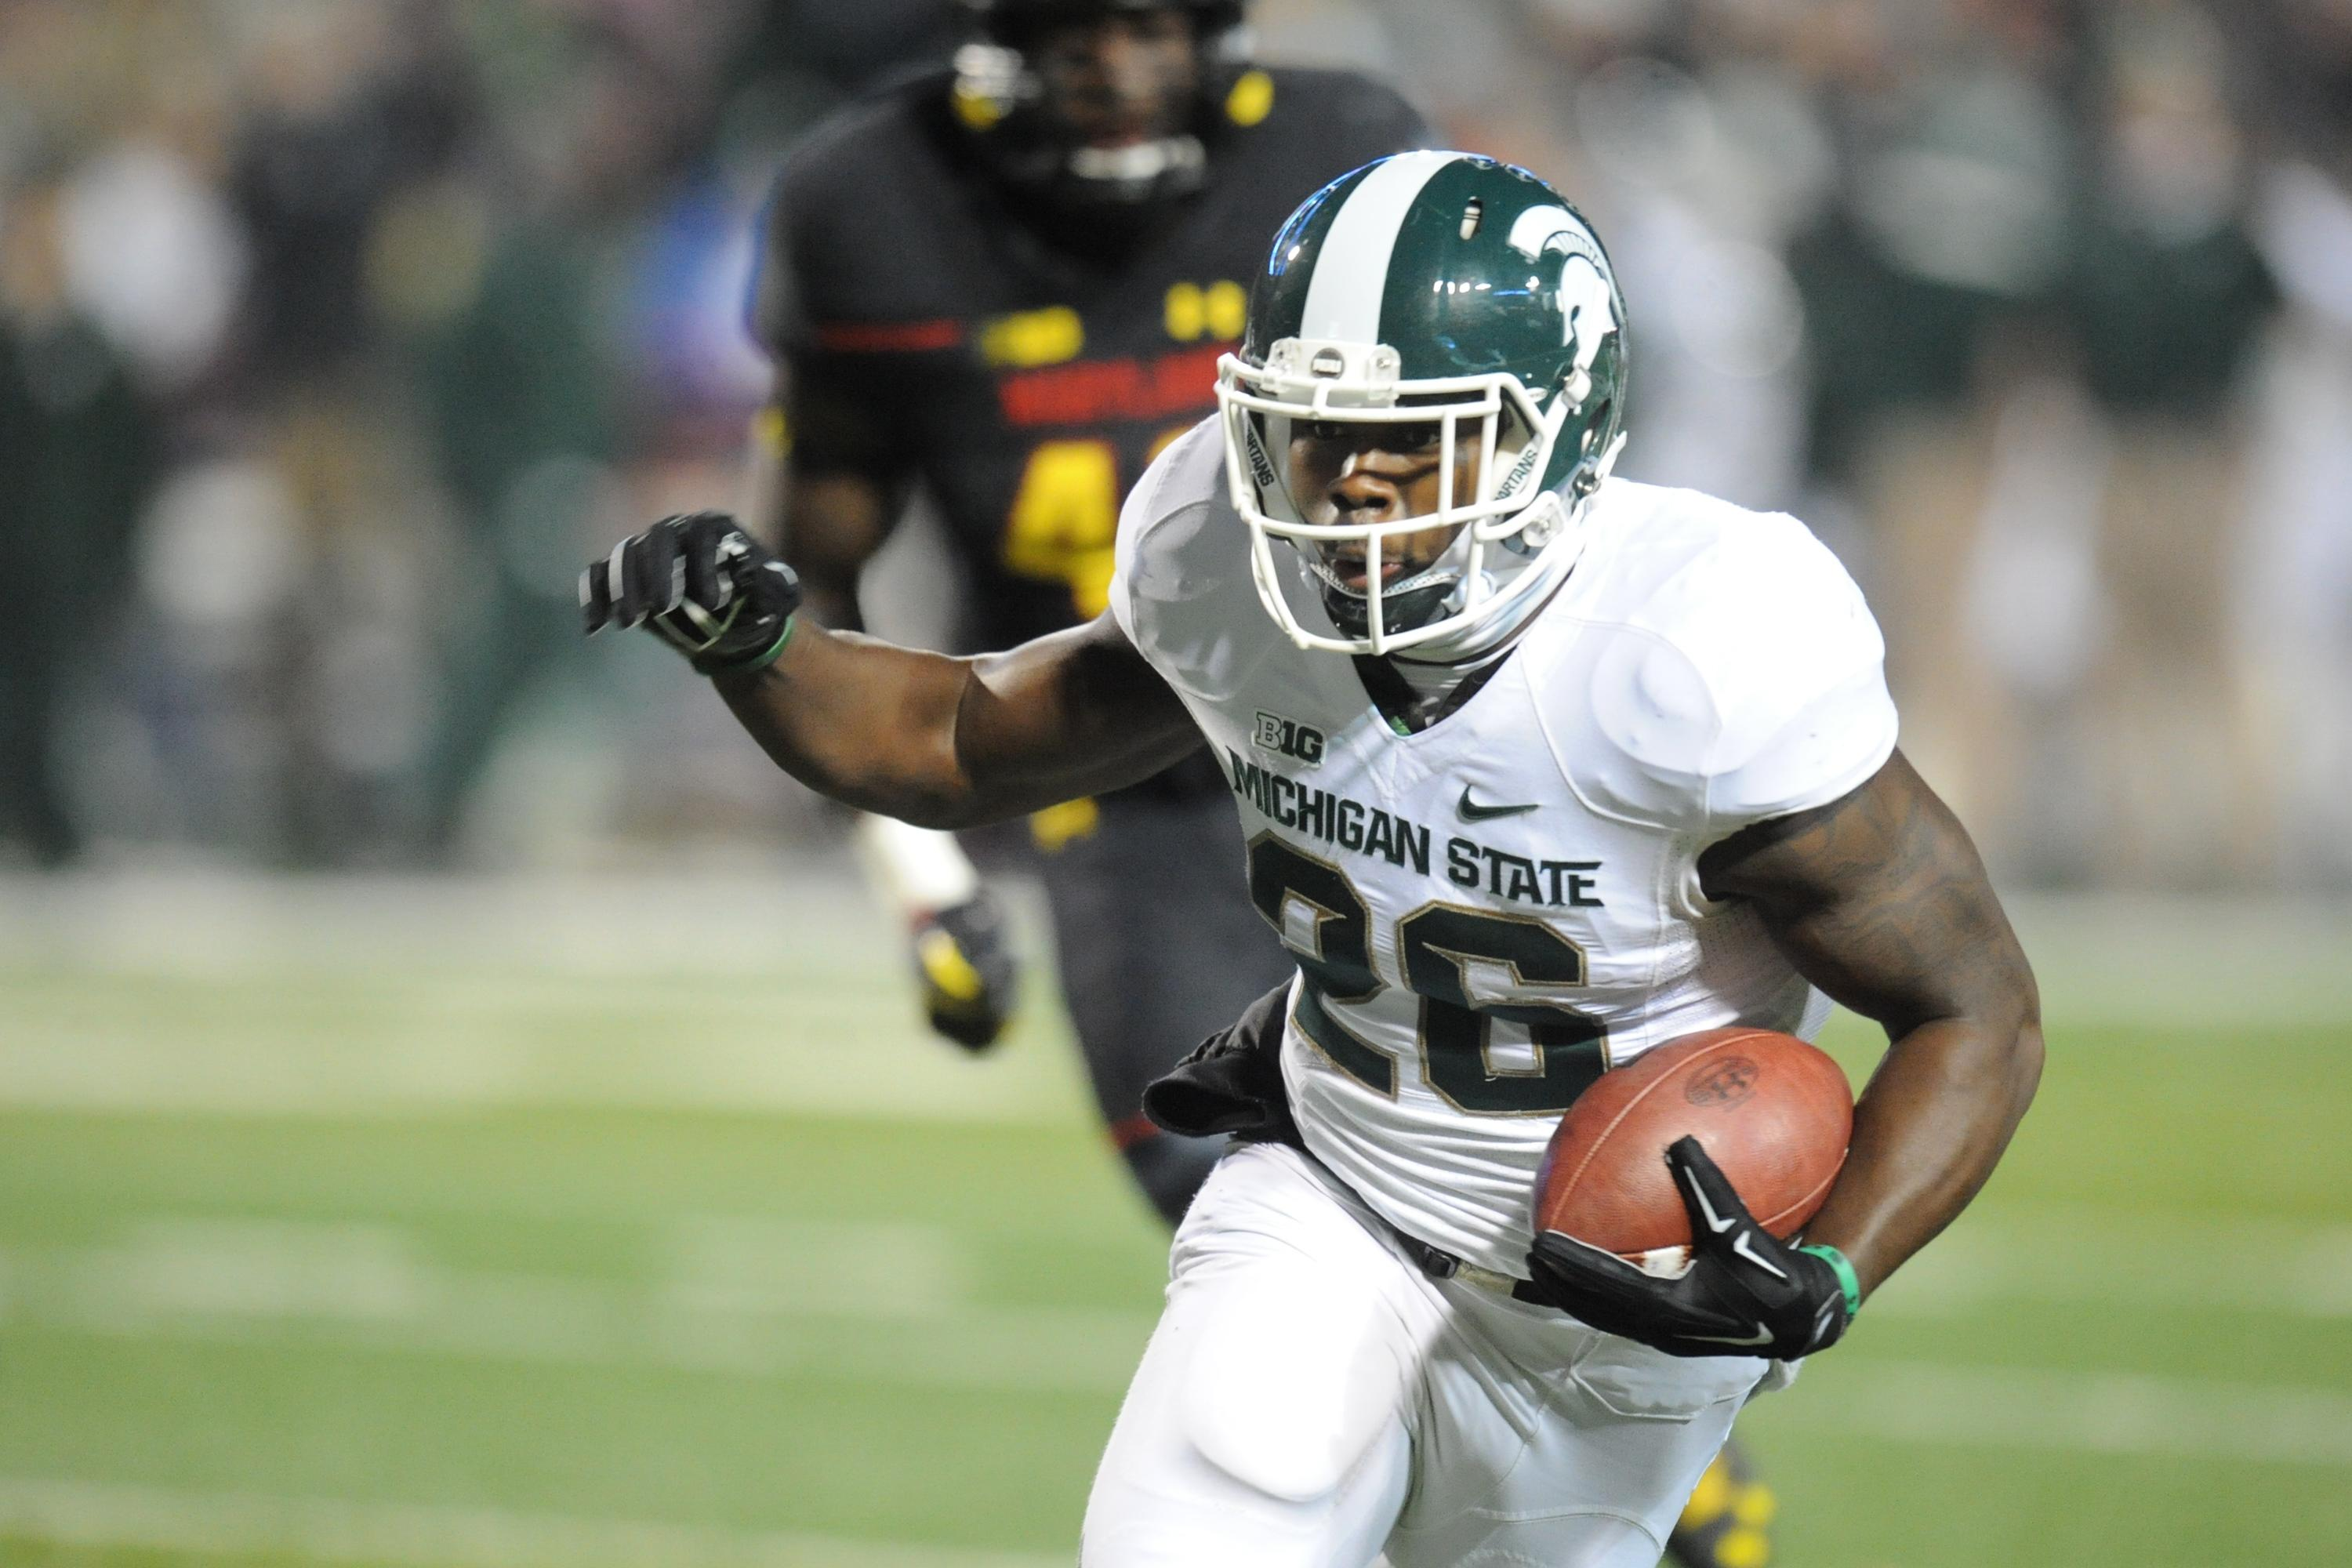 Michigan State safety RJ Williamson out with torn bicep